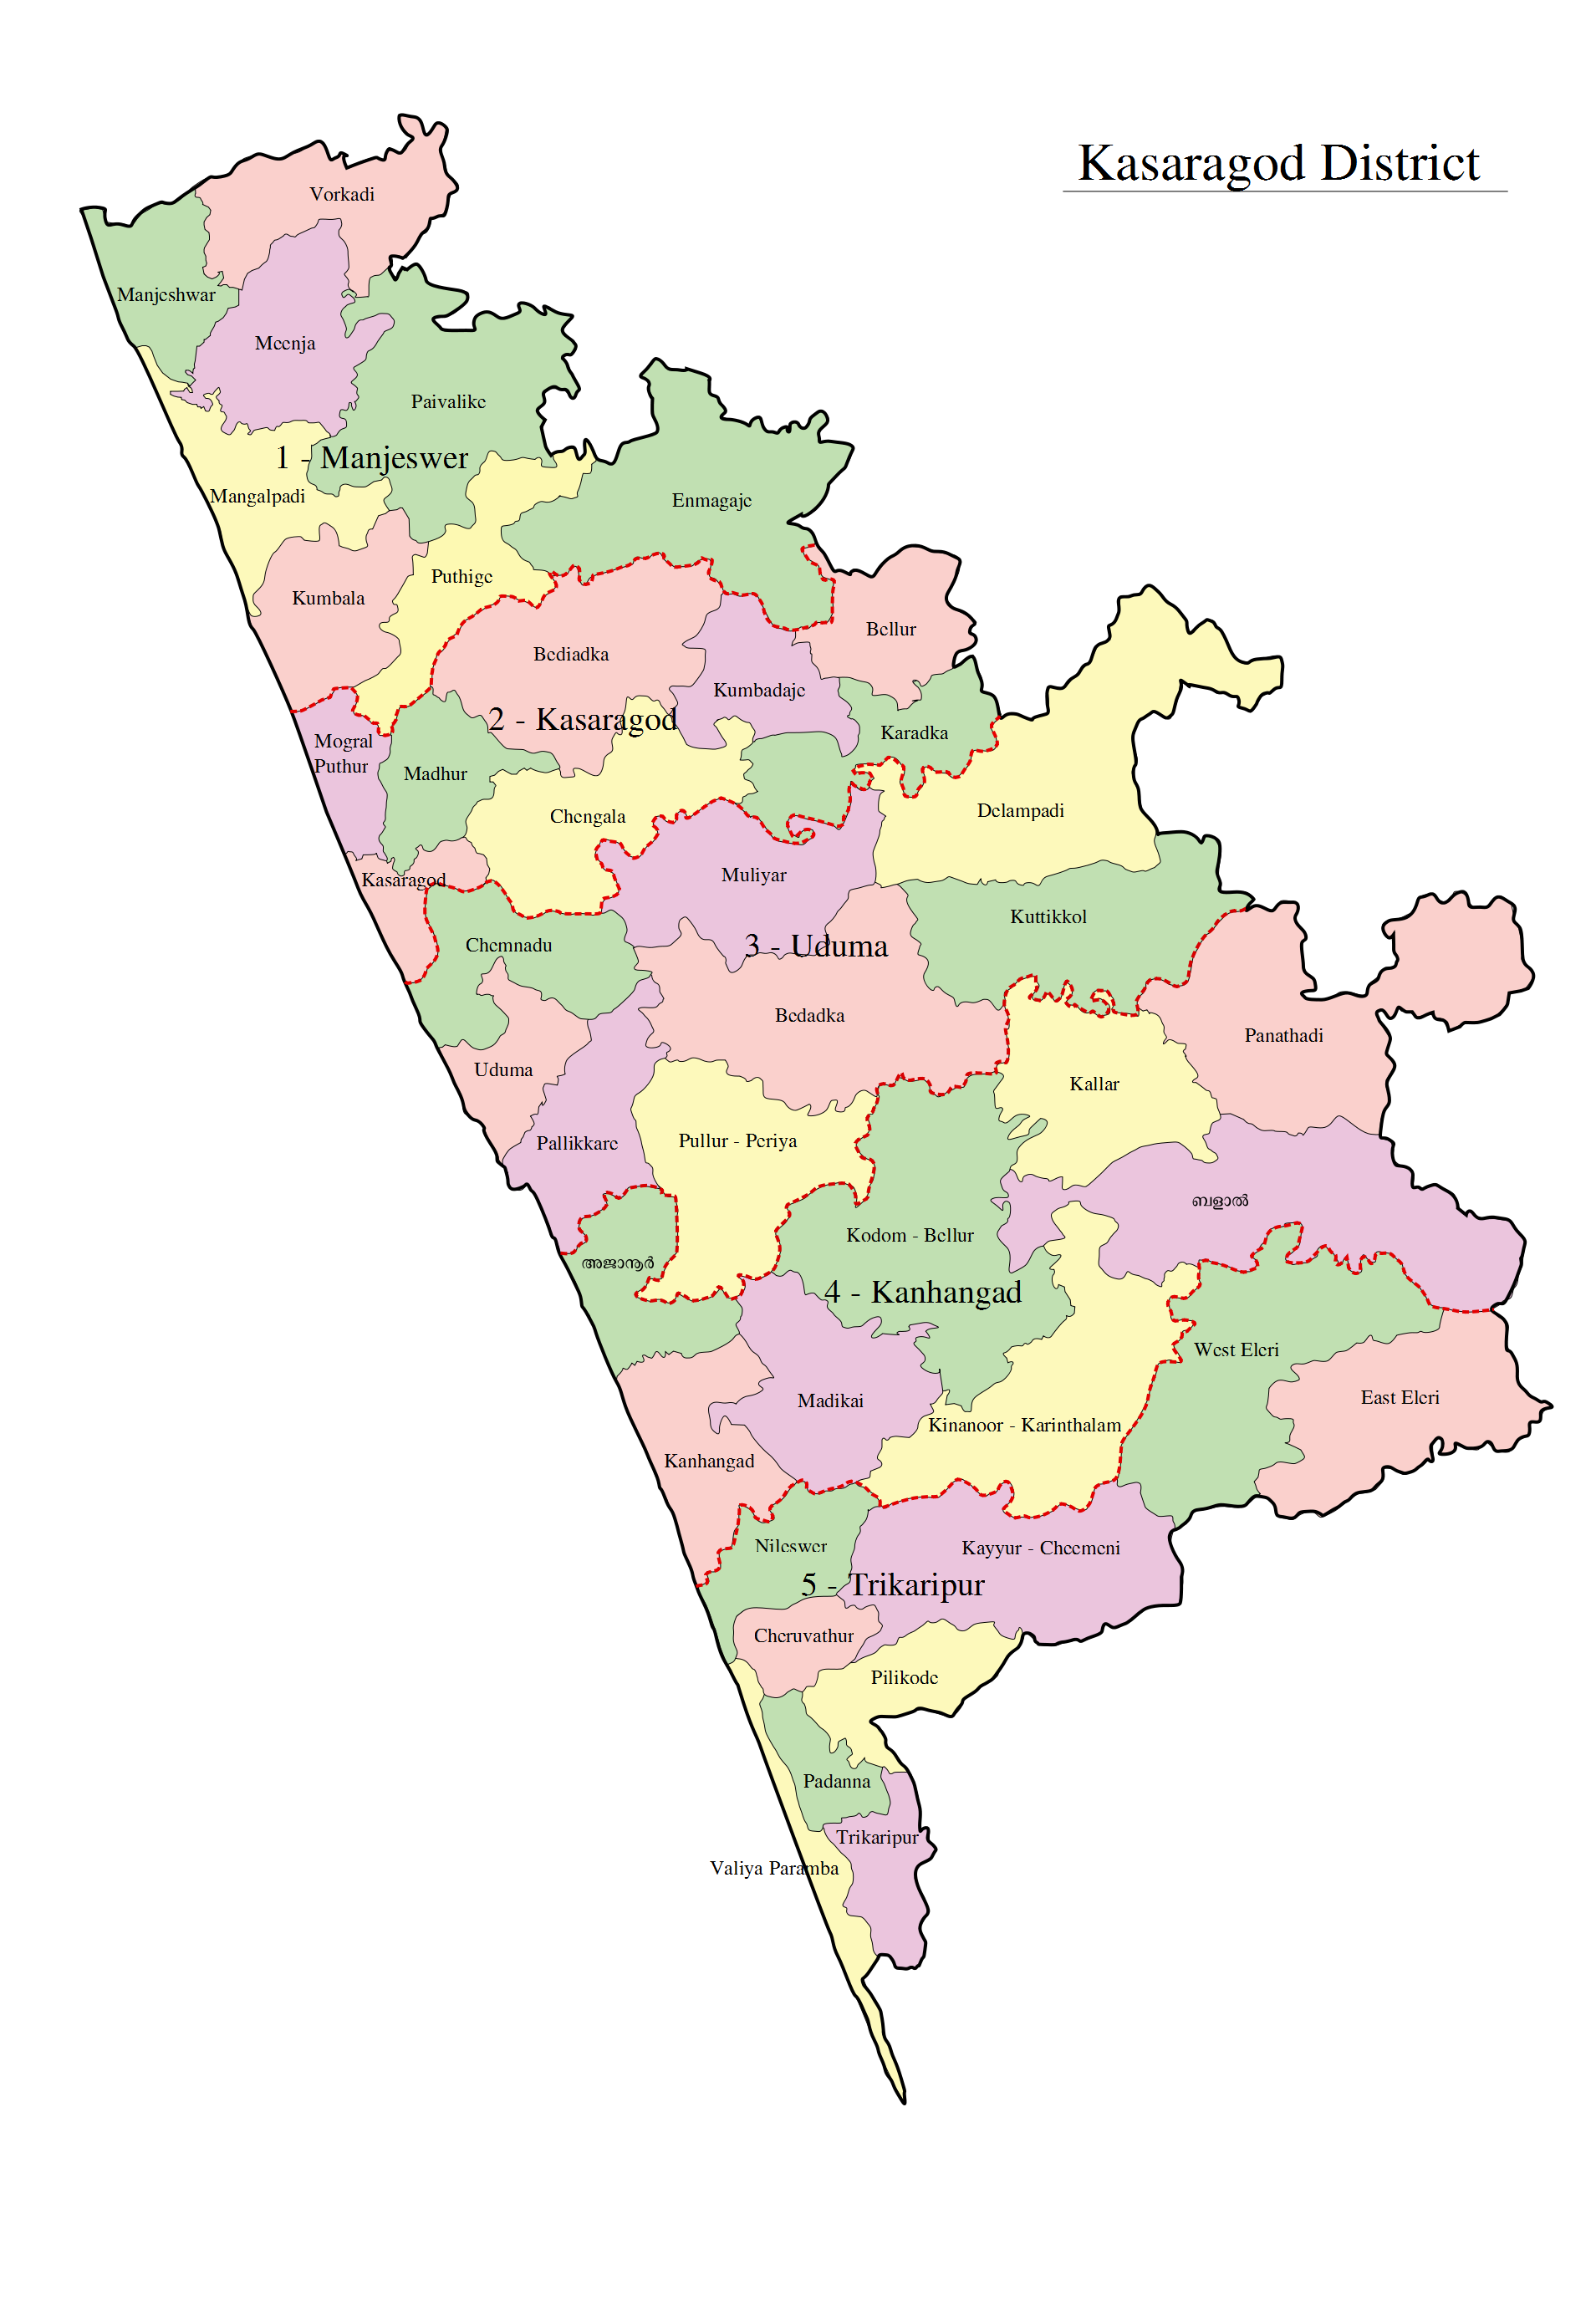 FileKasaragodmapenpng Wikimedia Commons - Kanhangad map